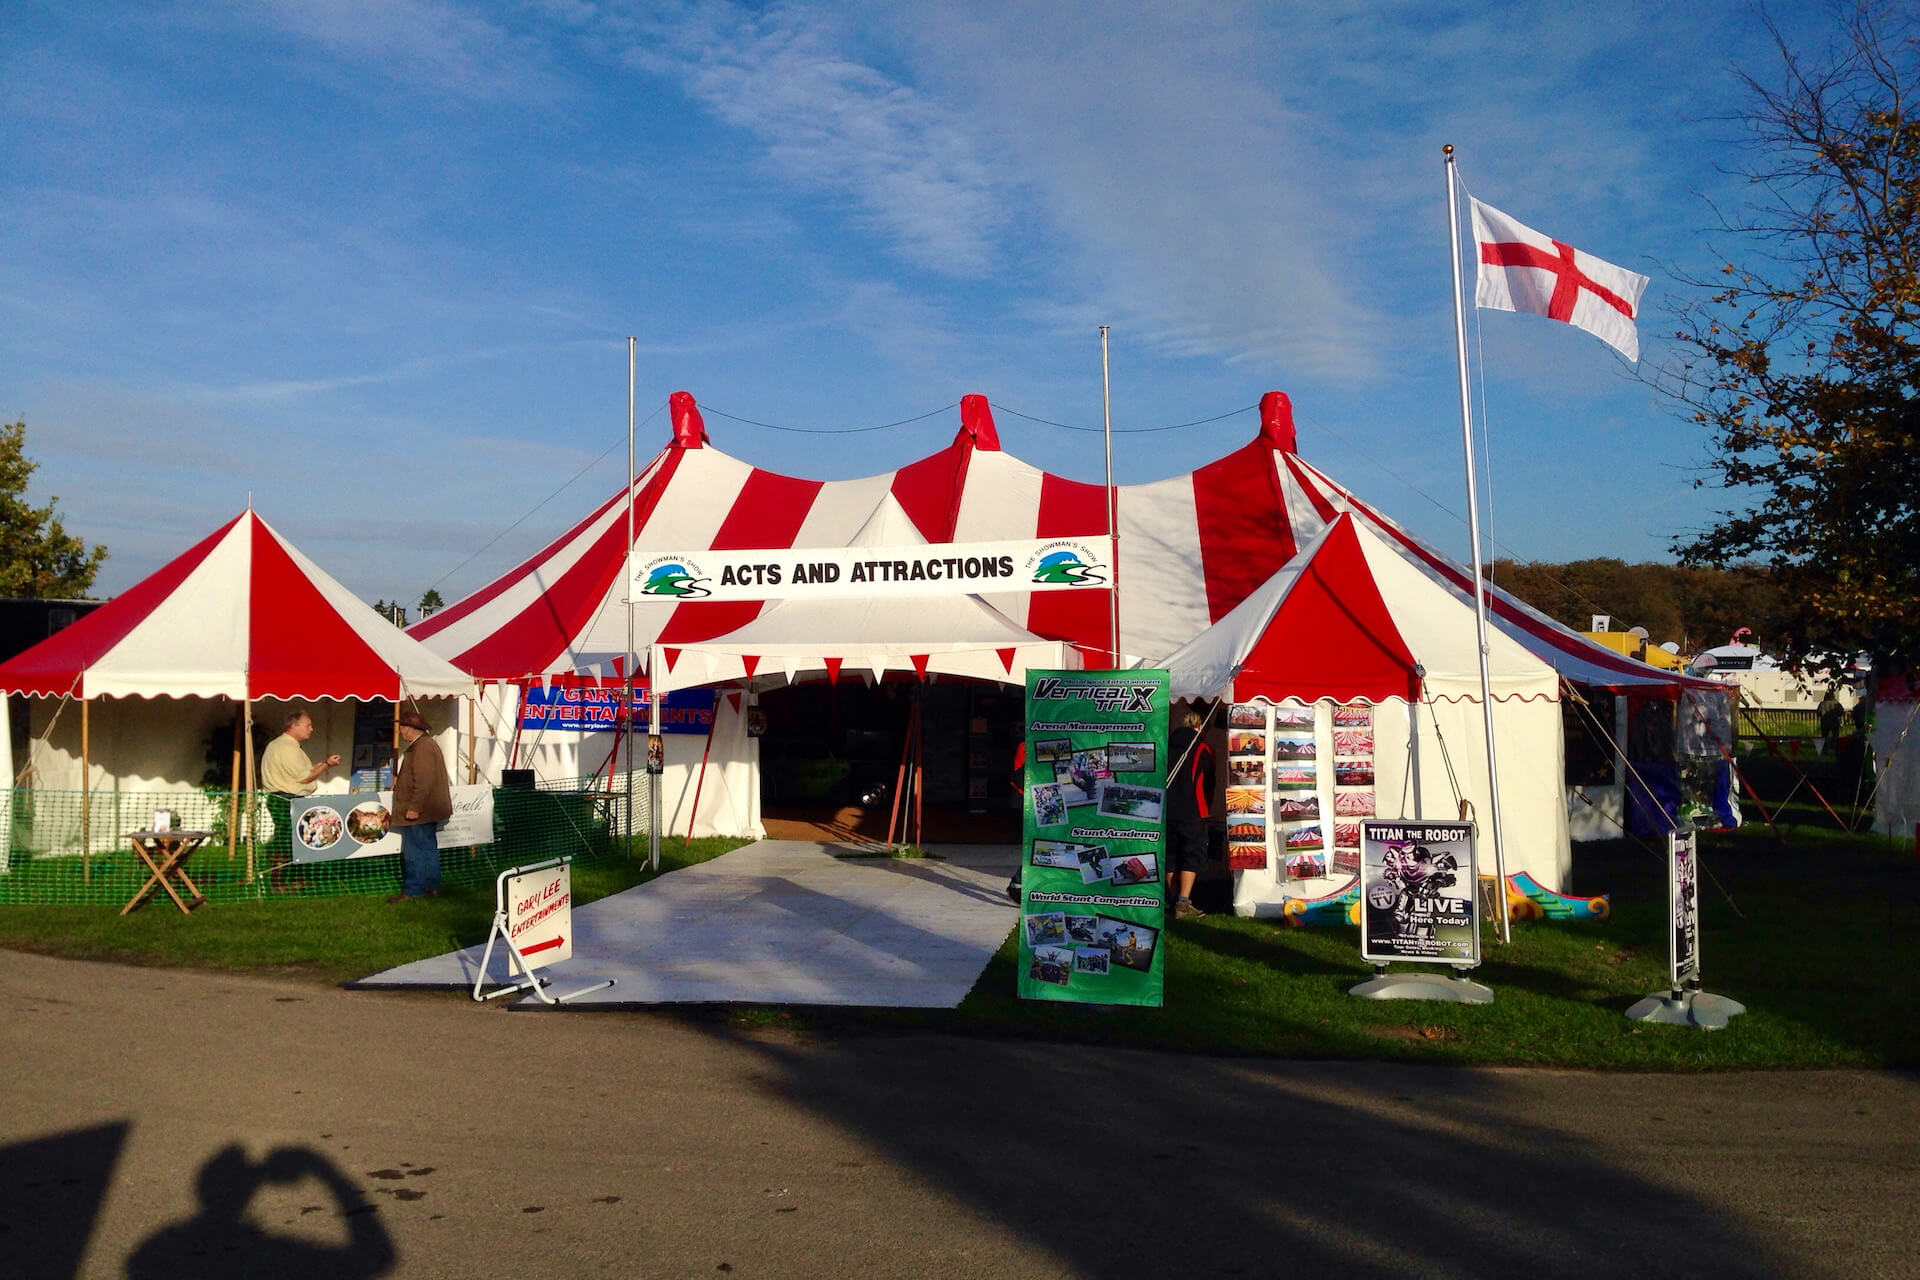 Acts and Attractions tent Showman's Show Berkshire